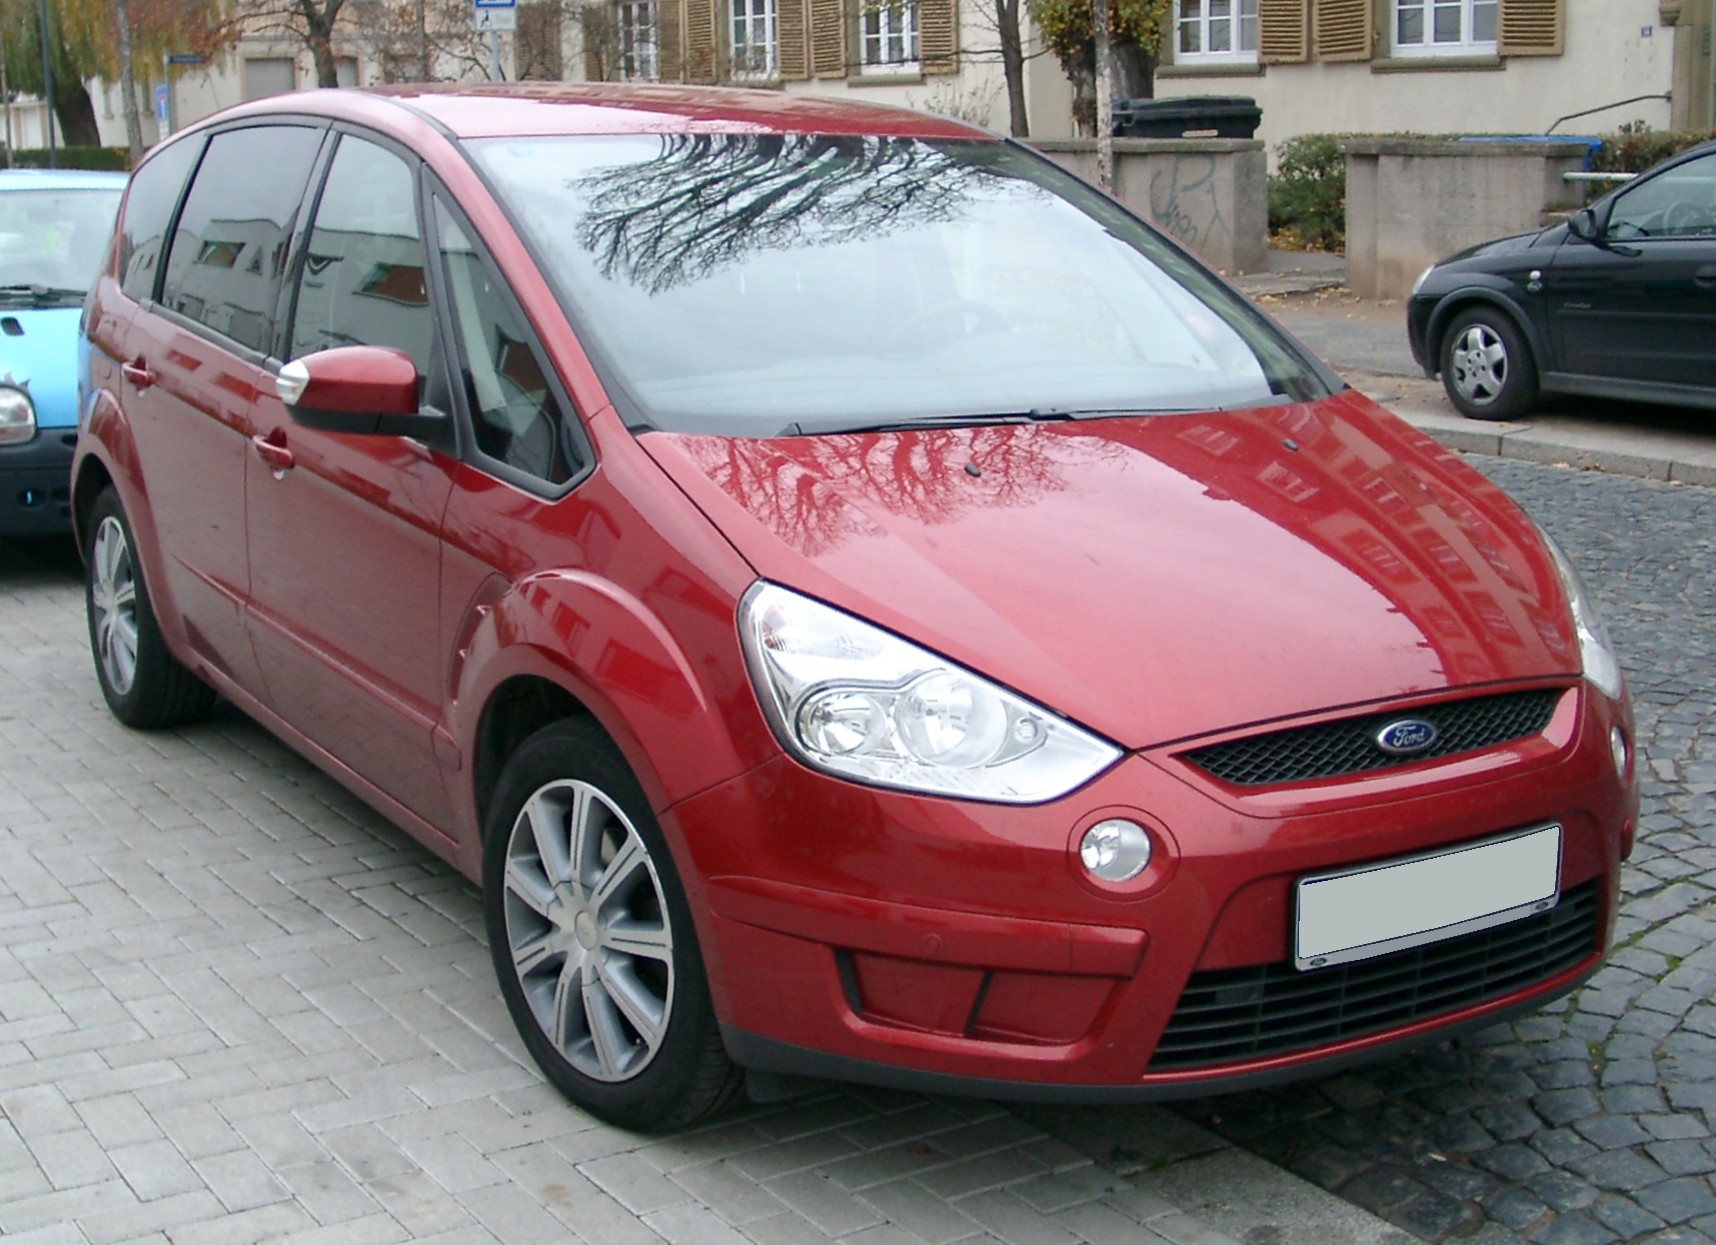 file ford s max front wikimedia commons. Black Bedroom Furniture Sets. Home Design Ideas